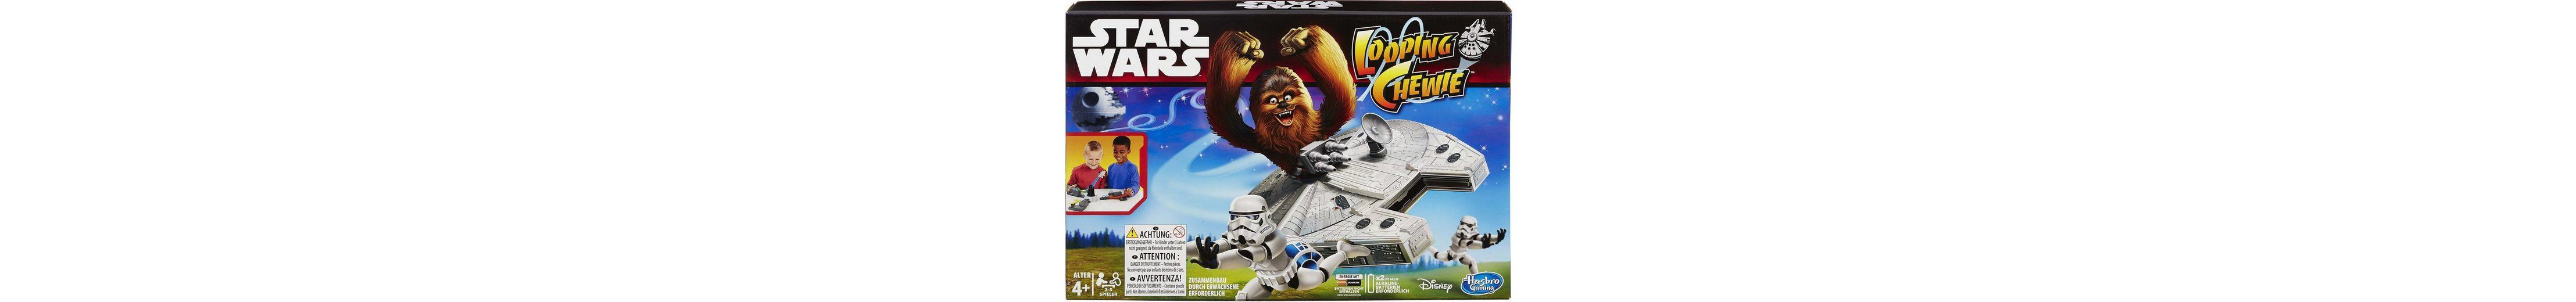 Hasbro Kinderspiel, »Star Wars™ - Looping Chewie«